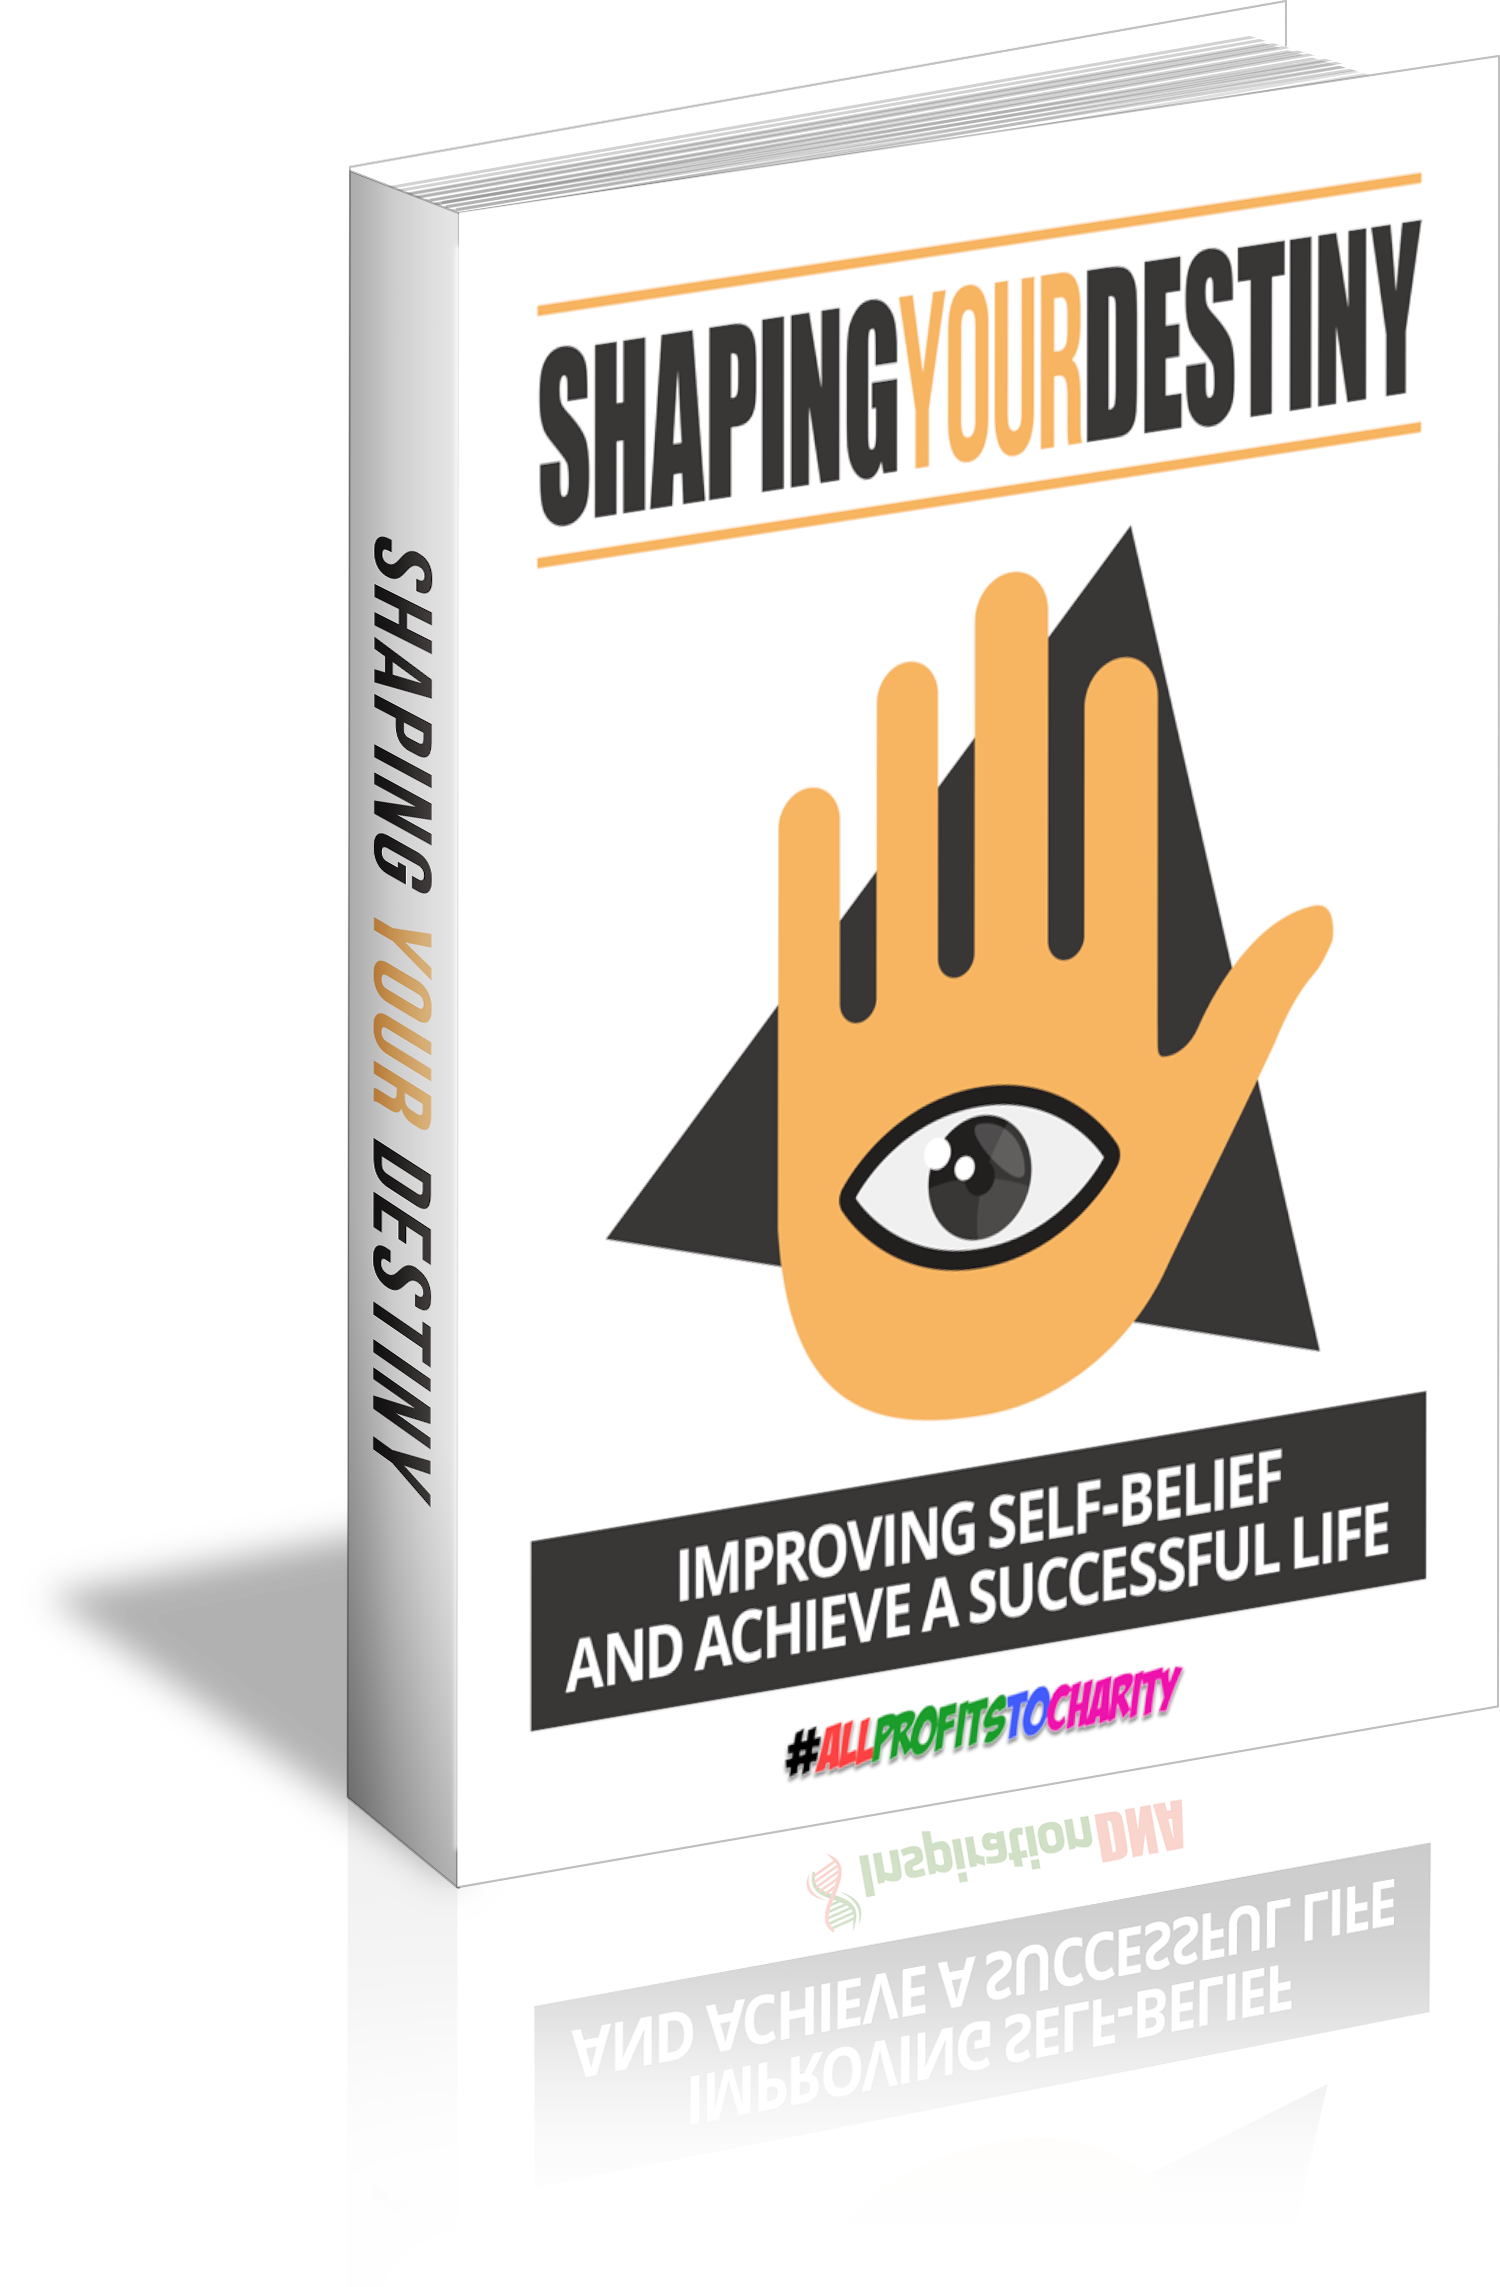 Shaping Your Destiny cover